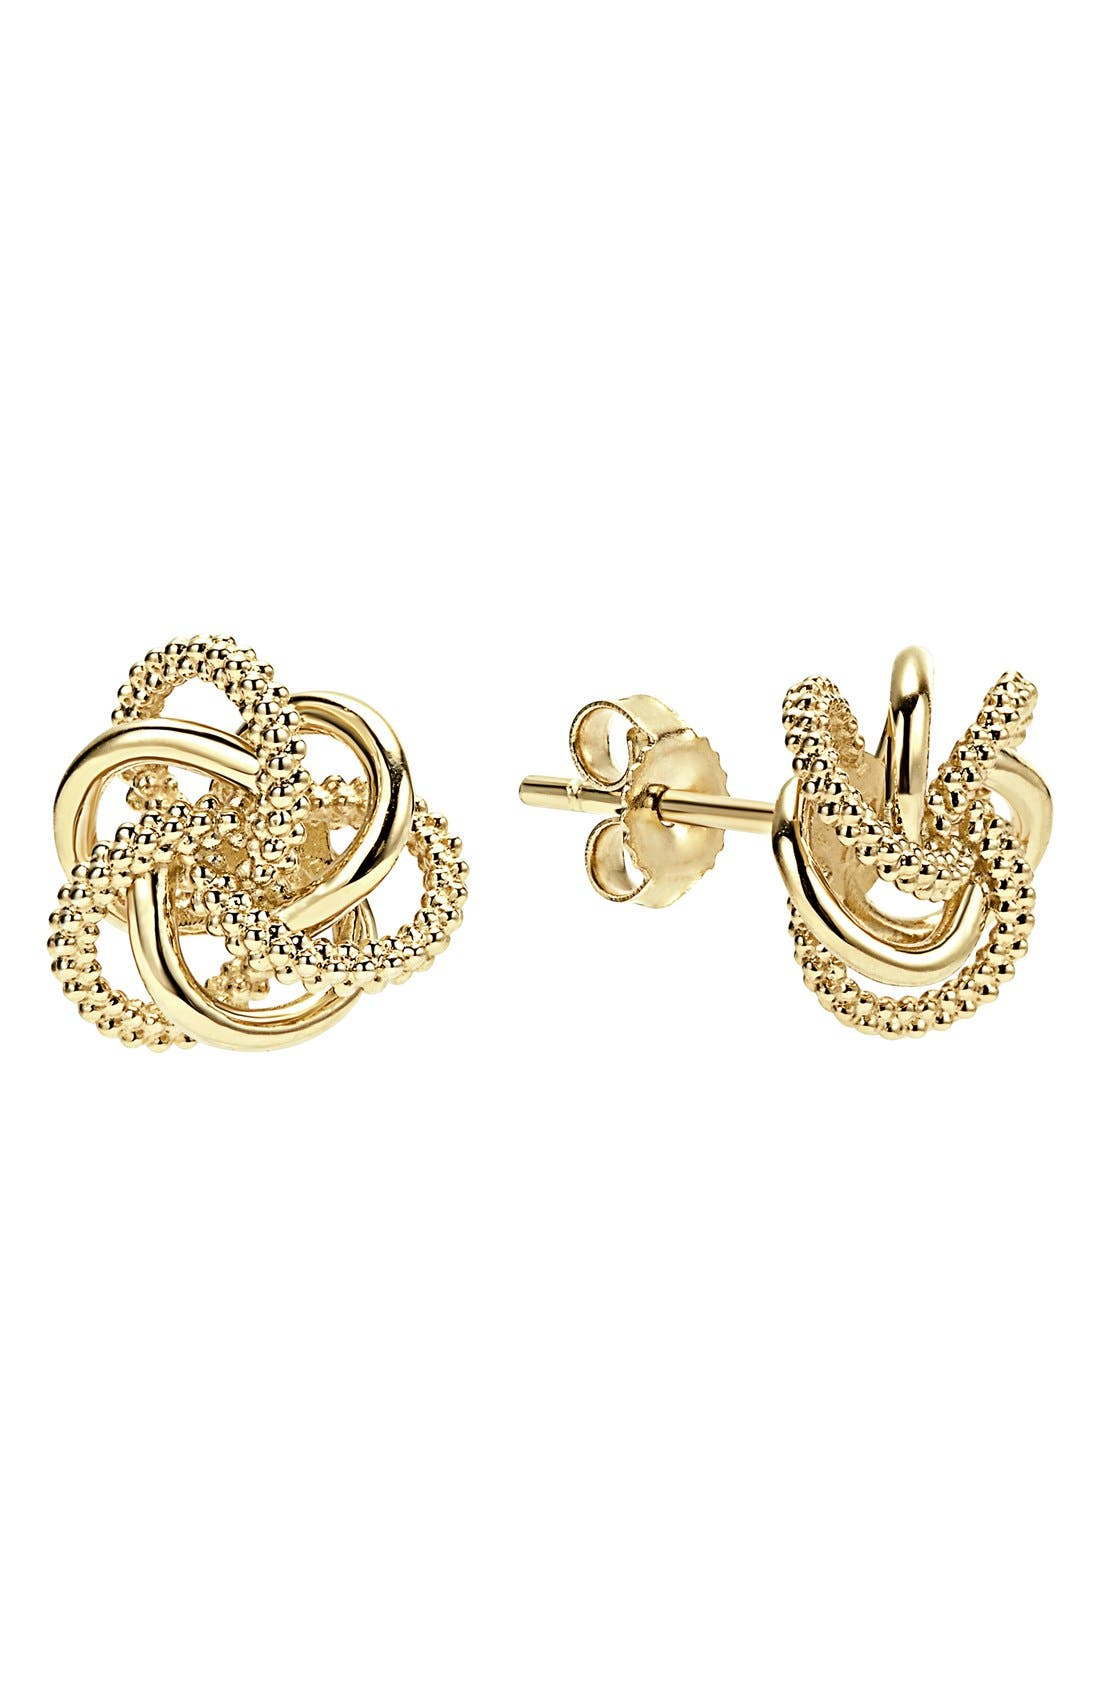 'Love Knot' 18k Gold Stud Earrings,                         Main,                         color, GOLD